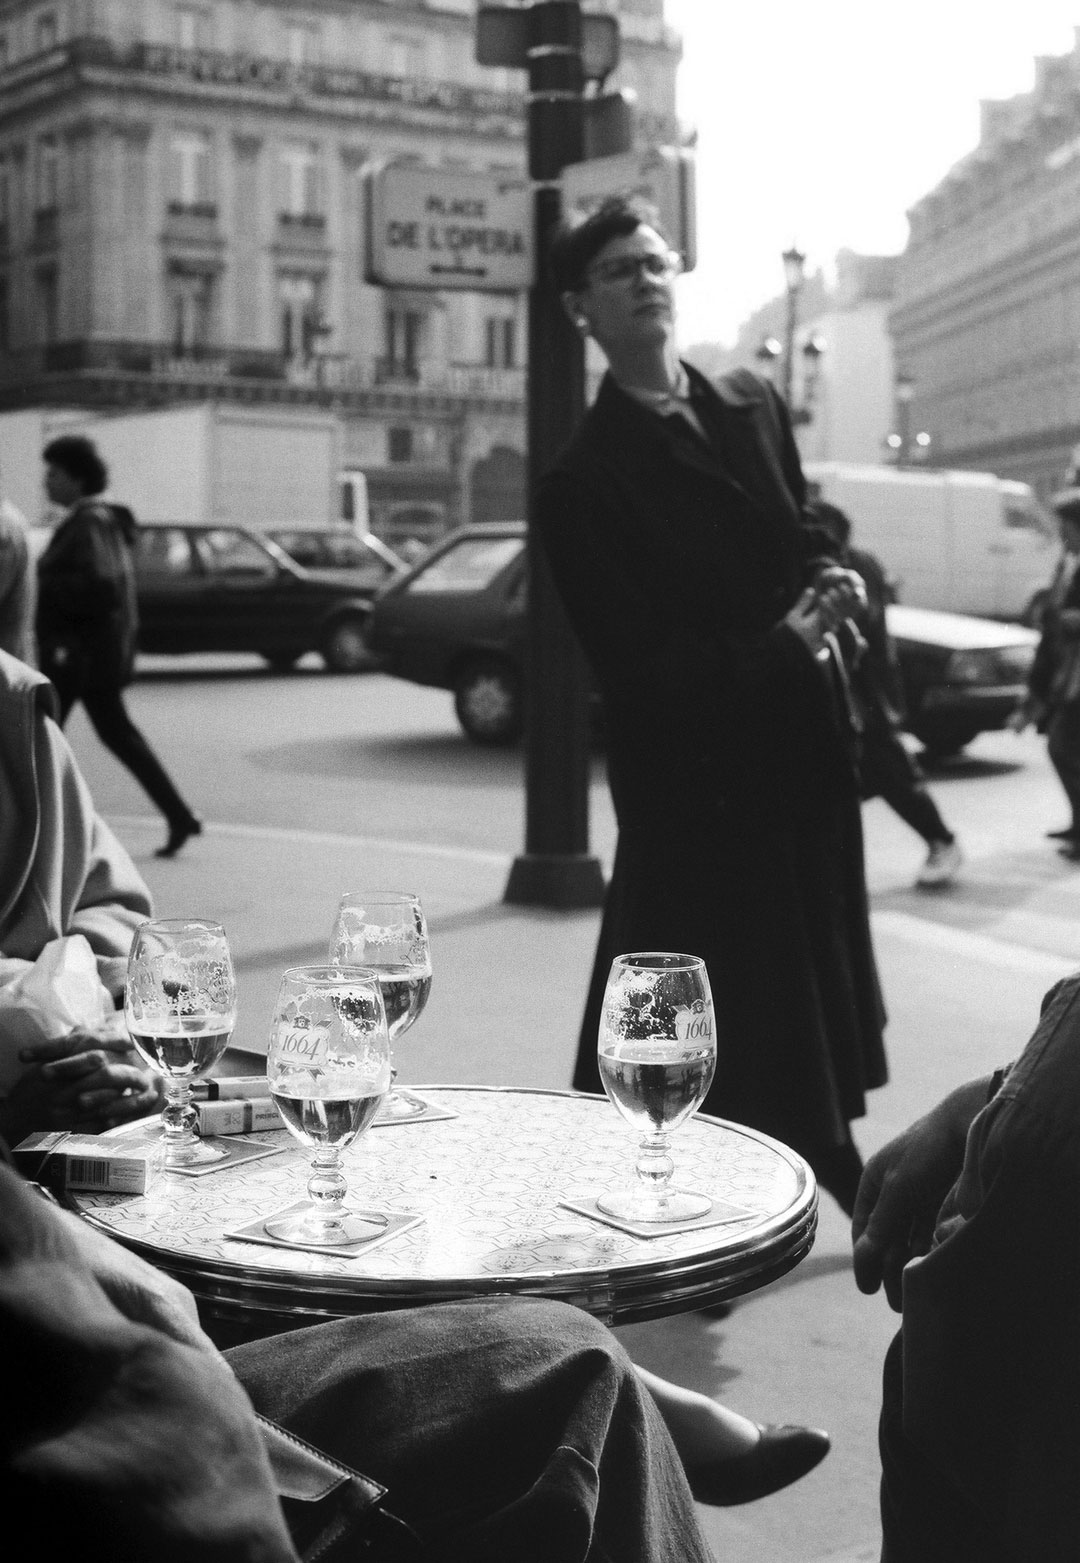 Café de la Paix - Paris - France - 1994